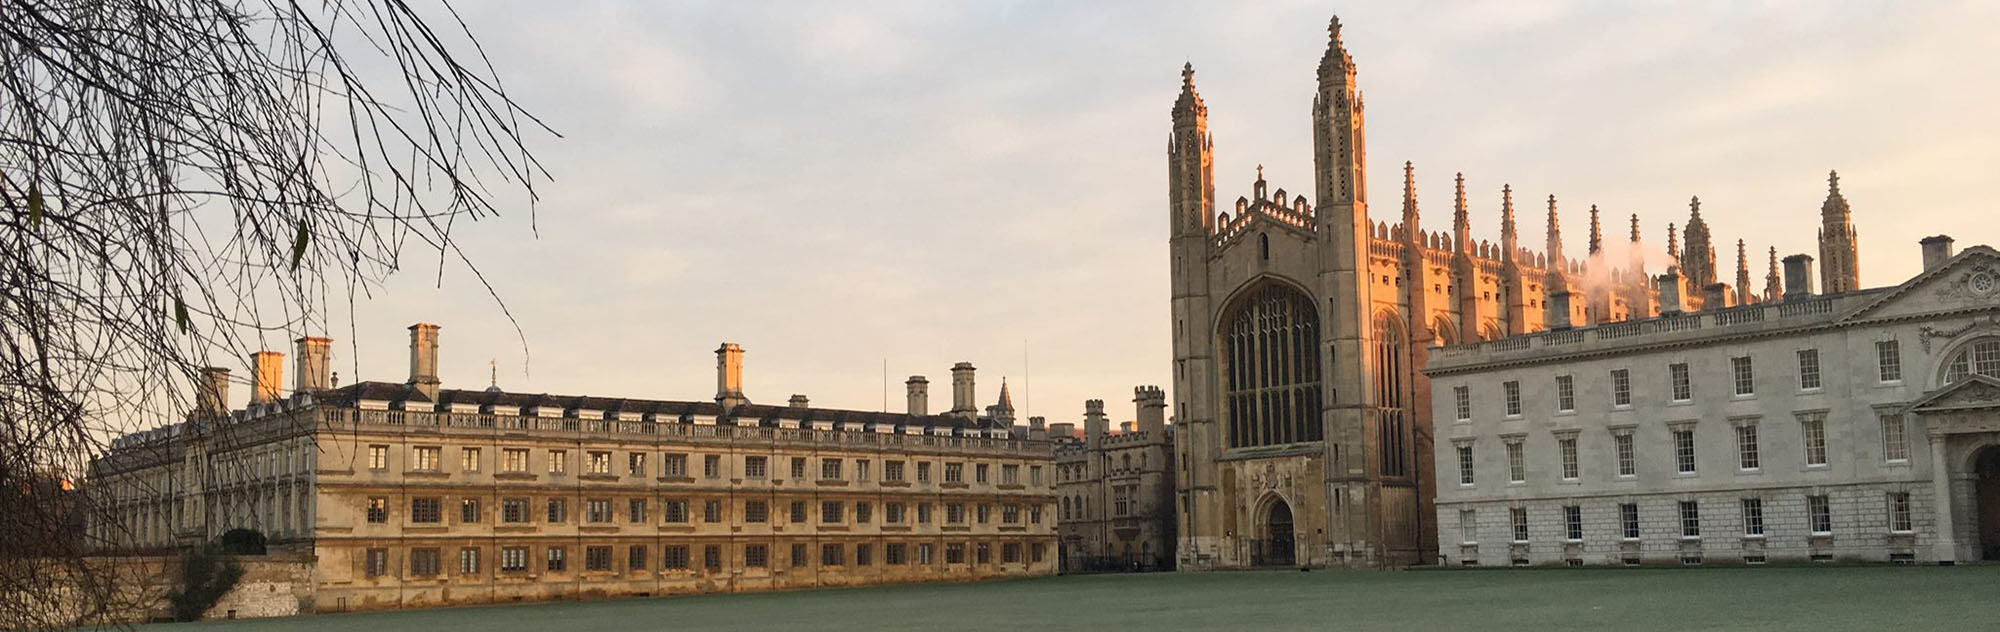 Buildings at the University of Cambridge